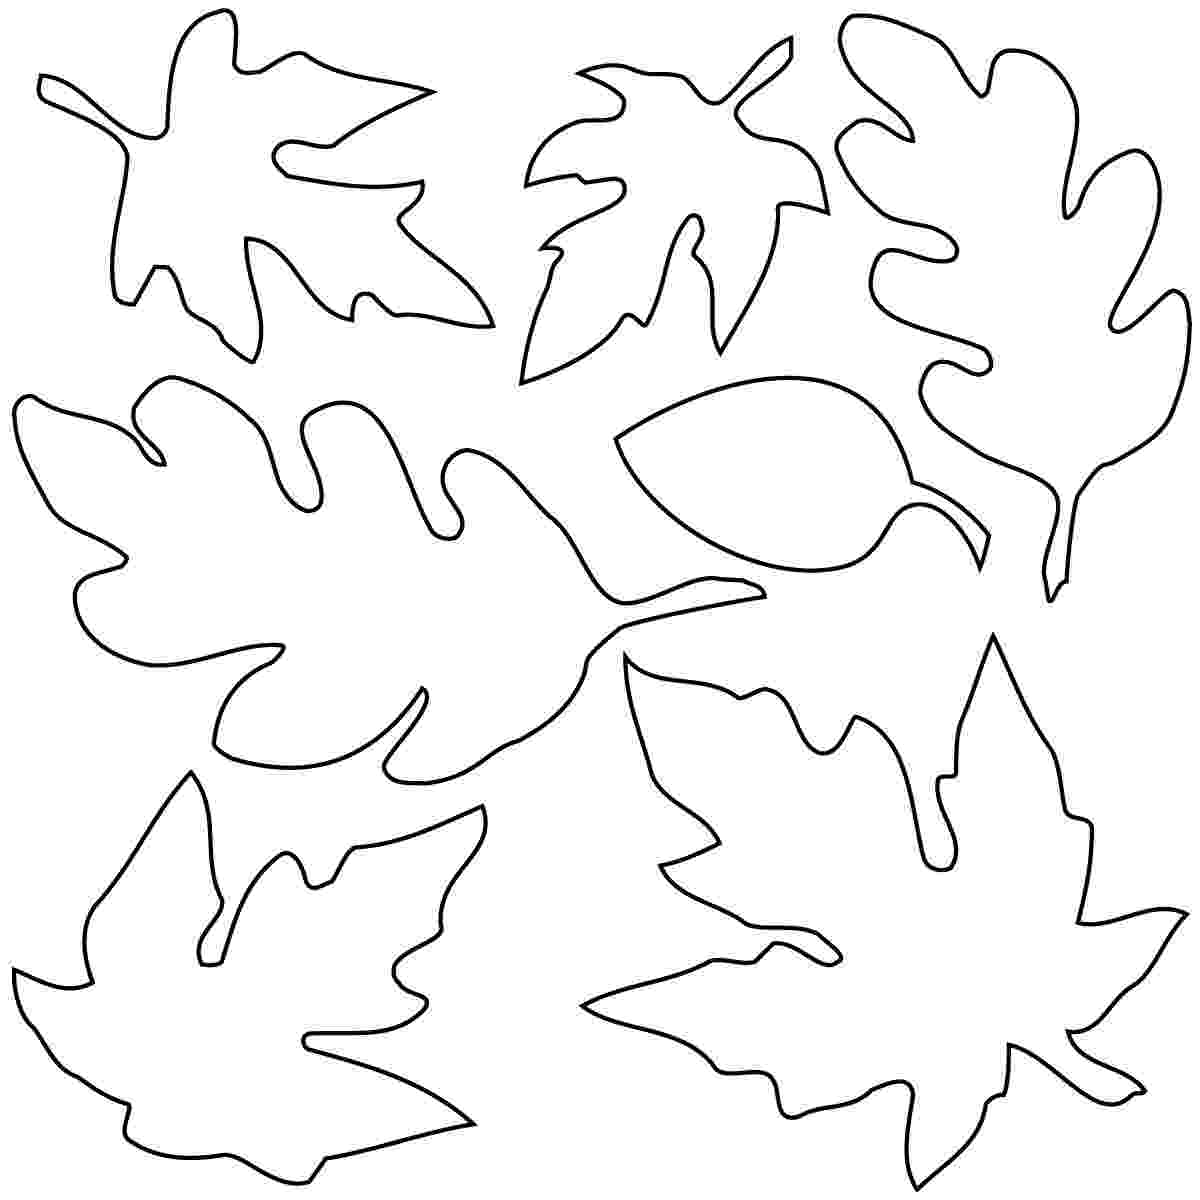 coloring pages fall leaves fall autumn leaves coloring page free printable coloring leaves coloring fall pages